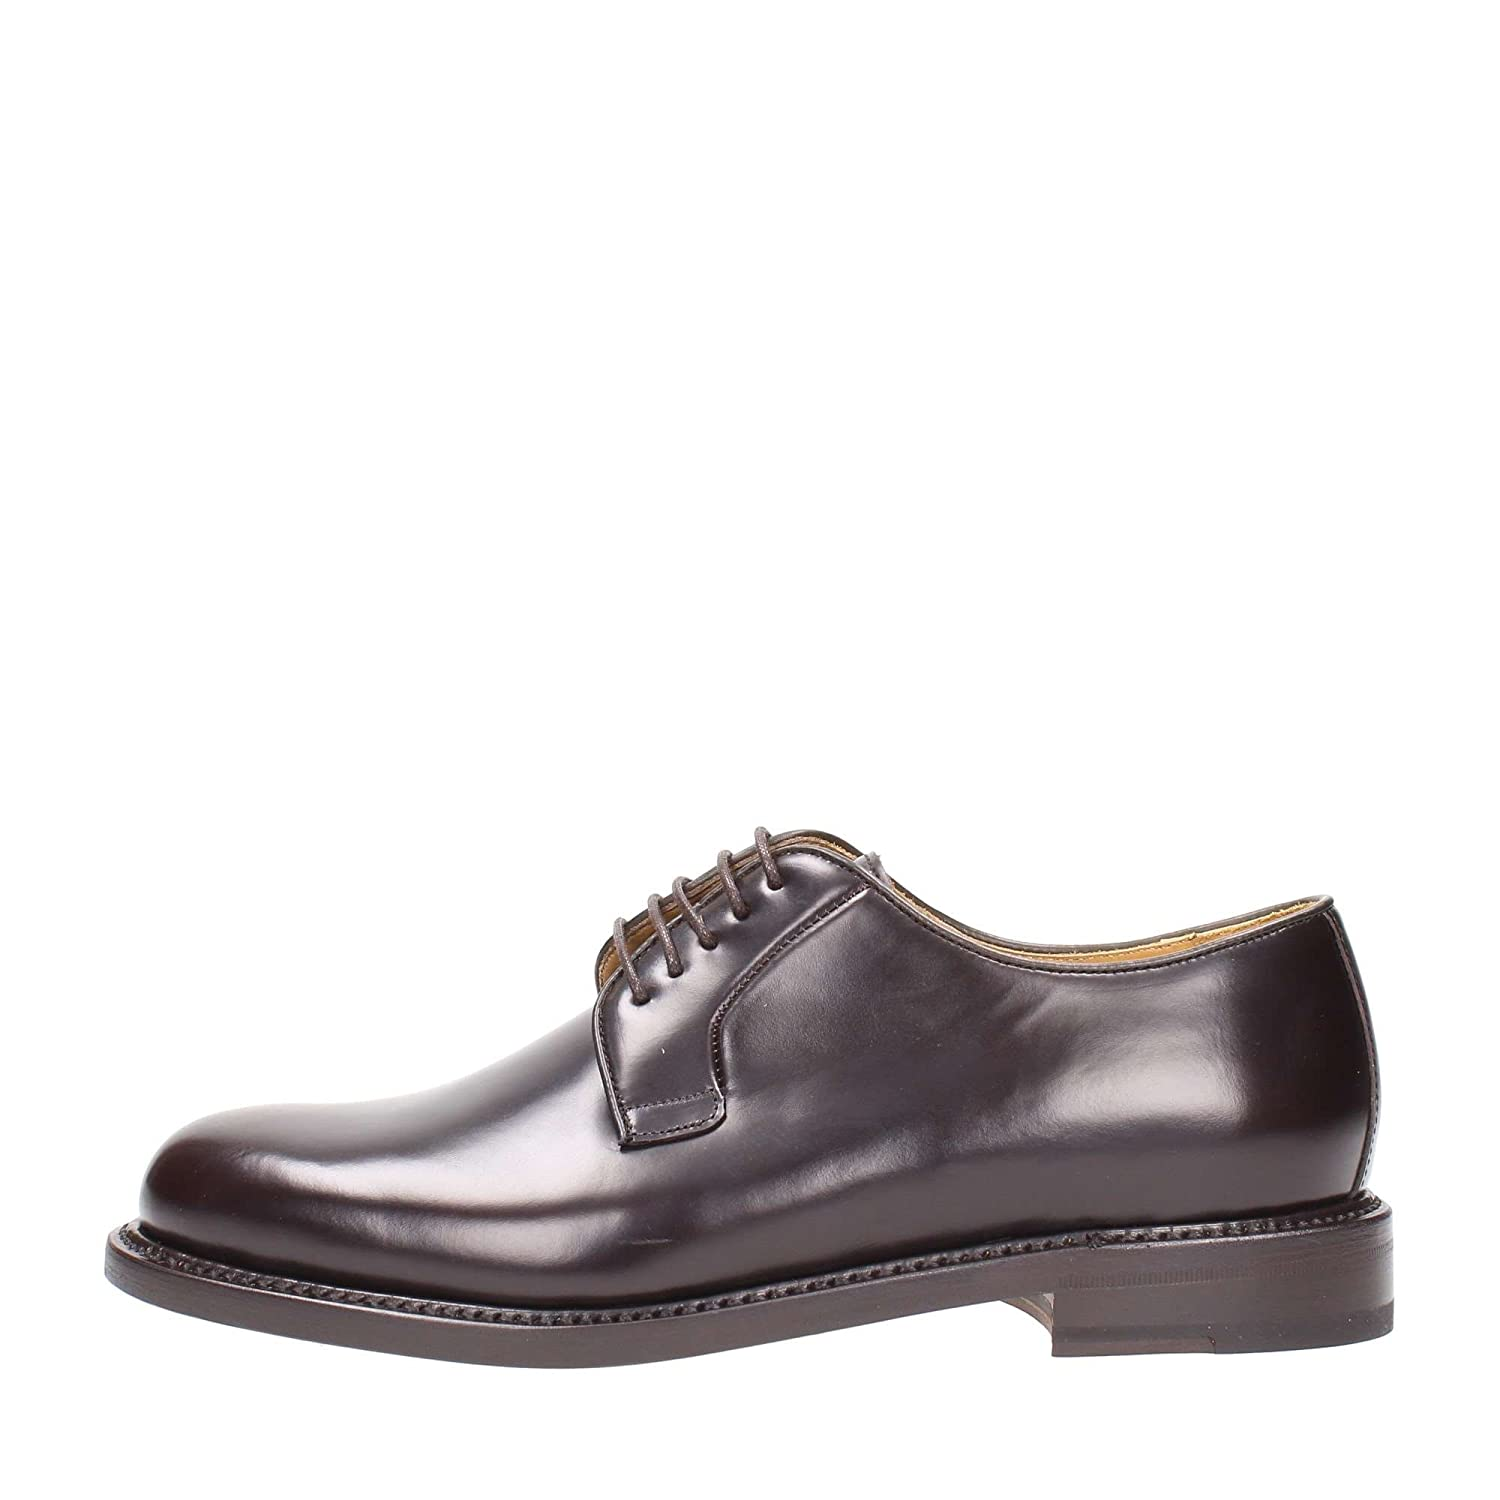 TALLA 6. Shoes IN Brown Leather, Hombre.